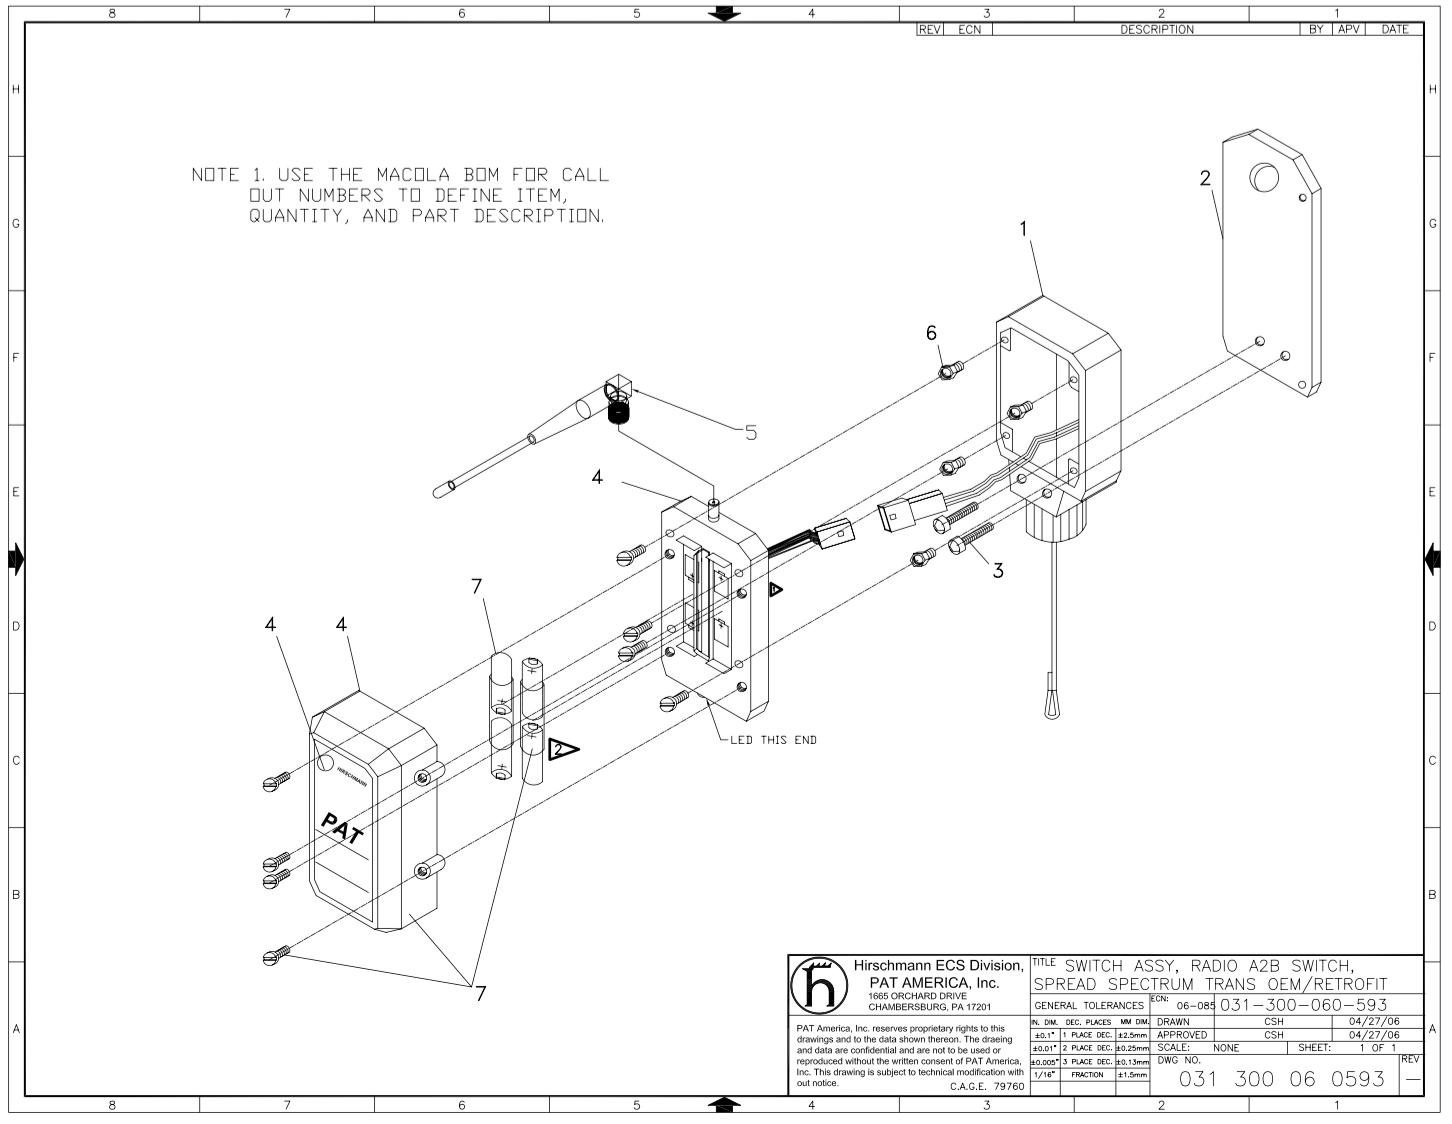 2004 volkswagen jetta ignition coil diagram html